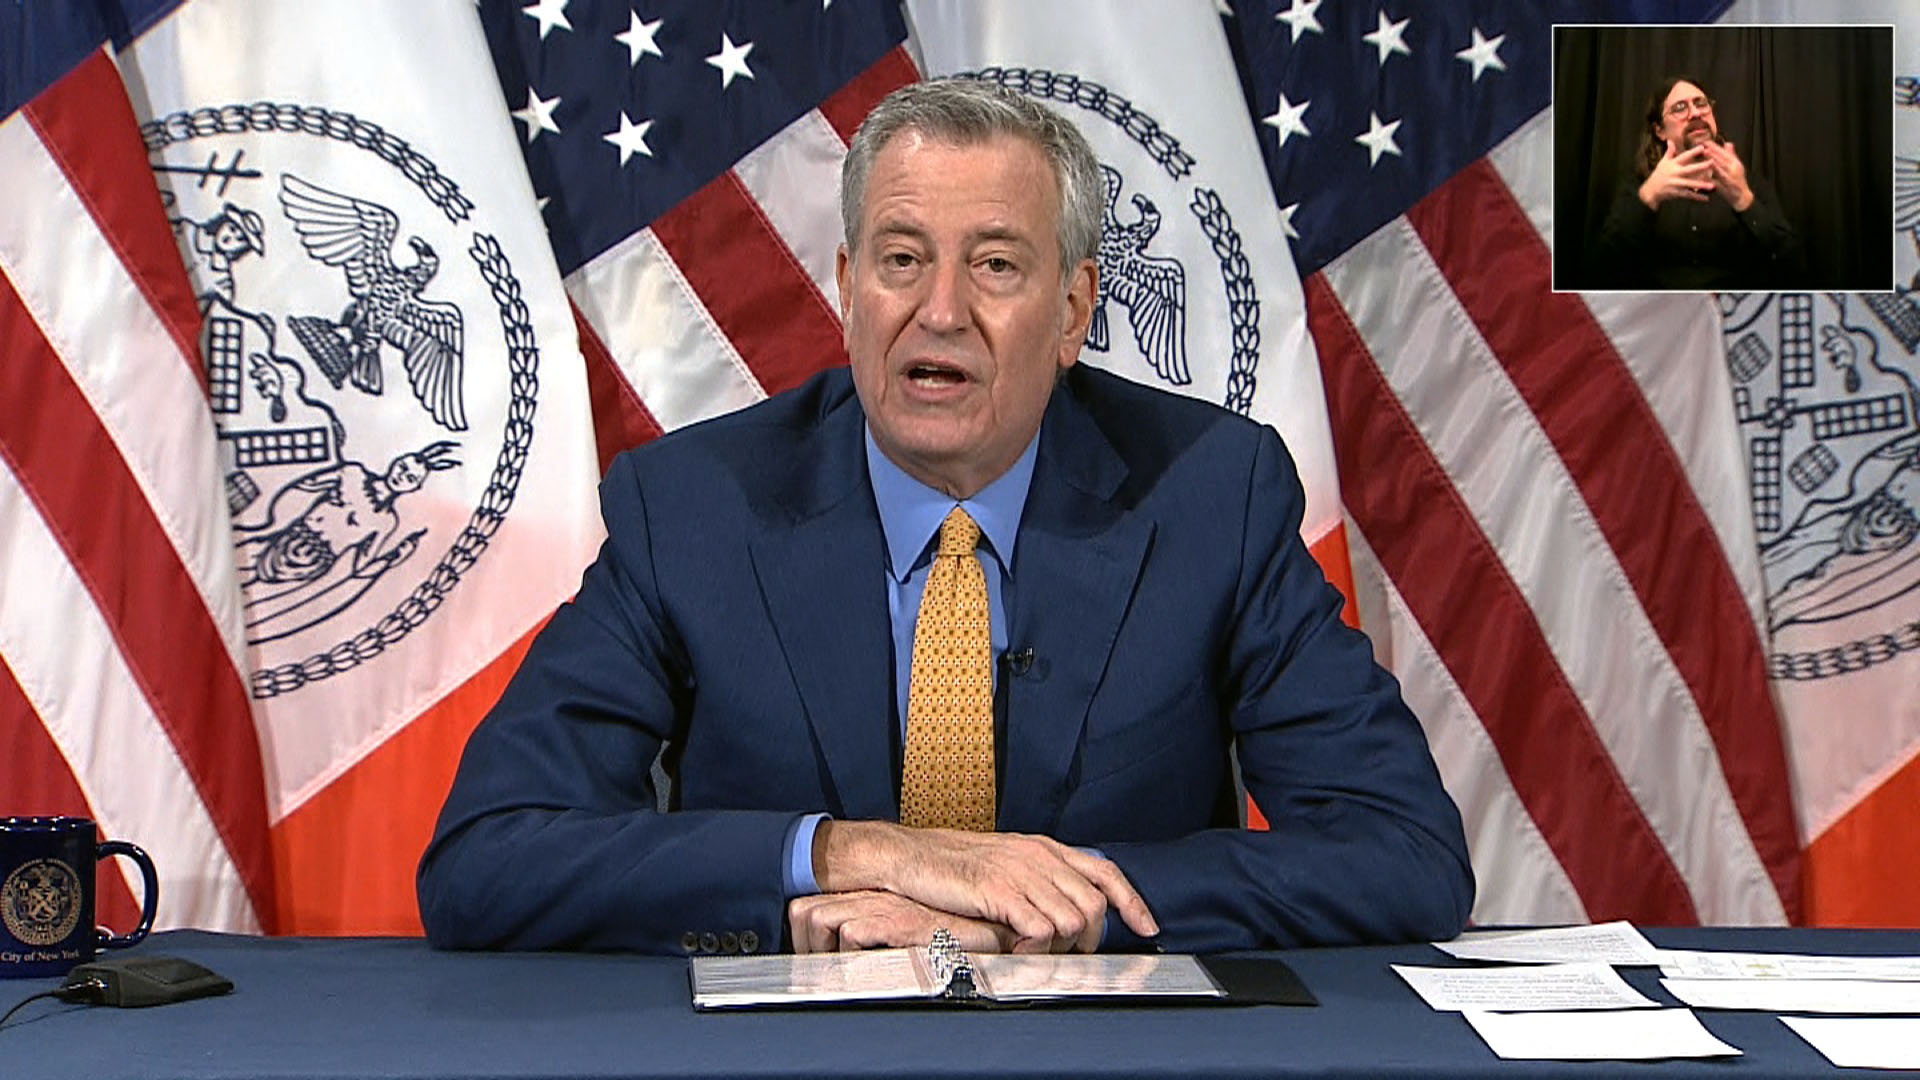 New York City Mayor Bill de Blasio speaks during a press conference in New York City, New York, on November 25.